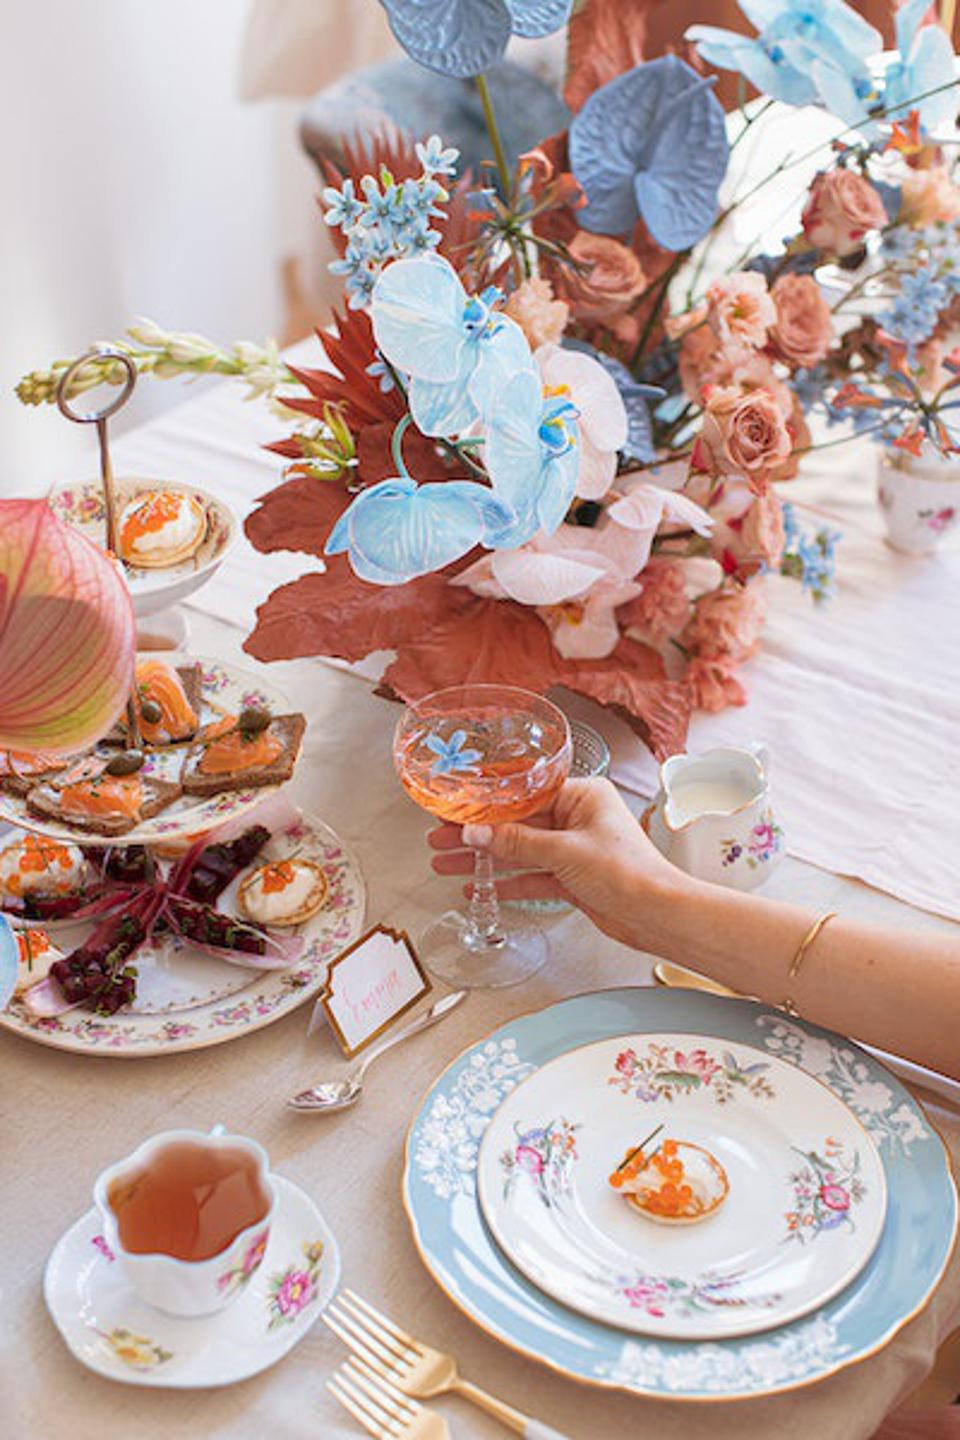 A tablescape with flowers and upcycled china